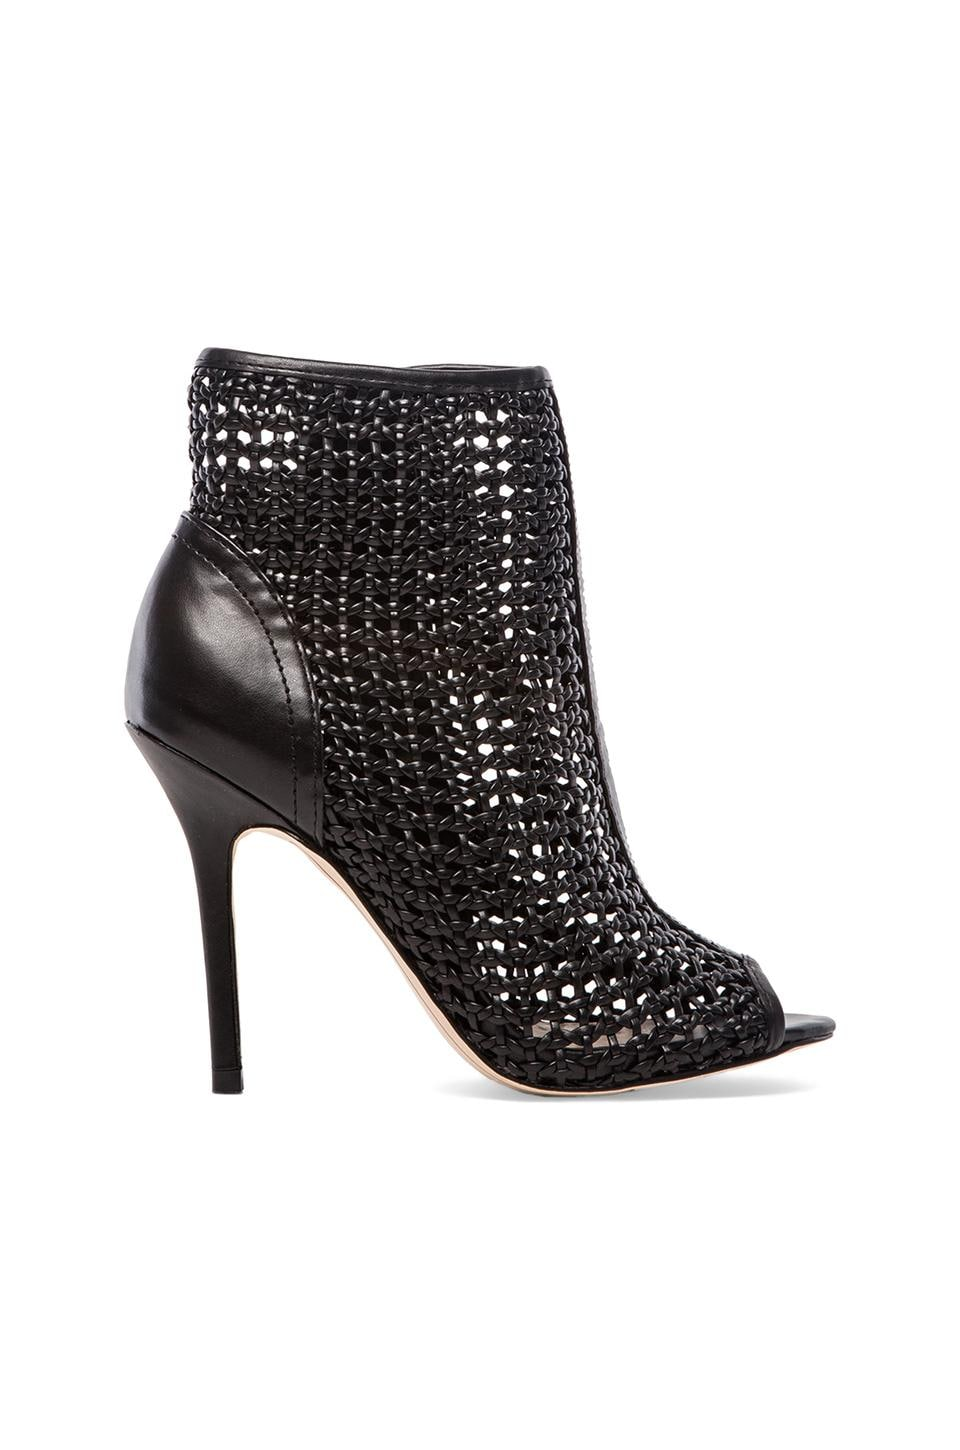 Sam Edelman Aubriana Heel in Black